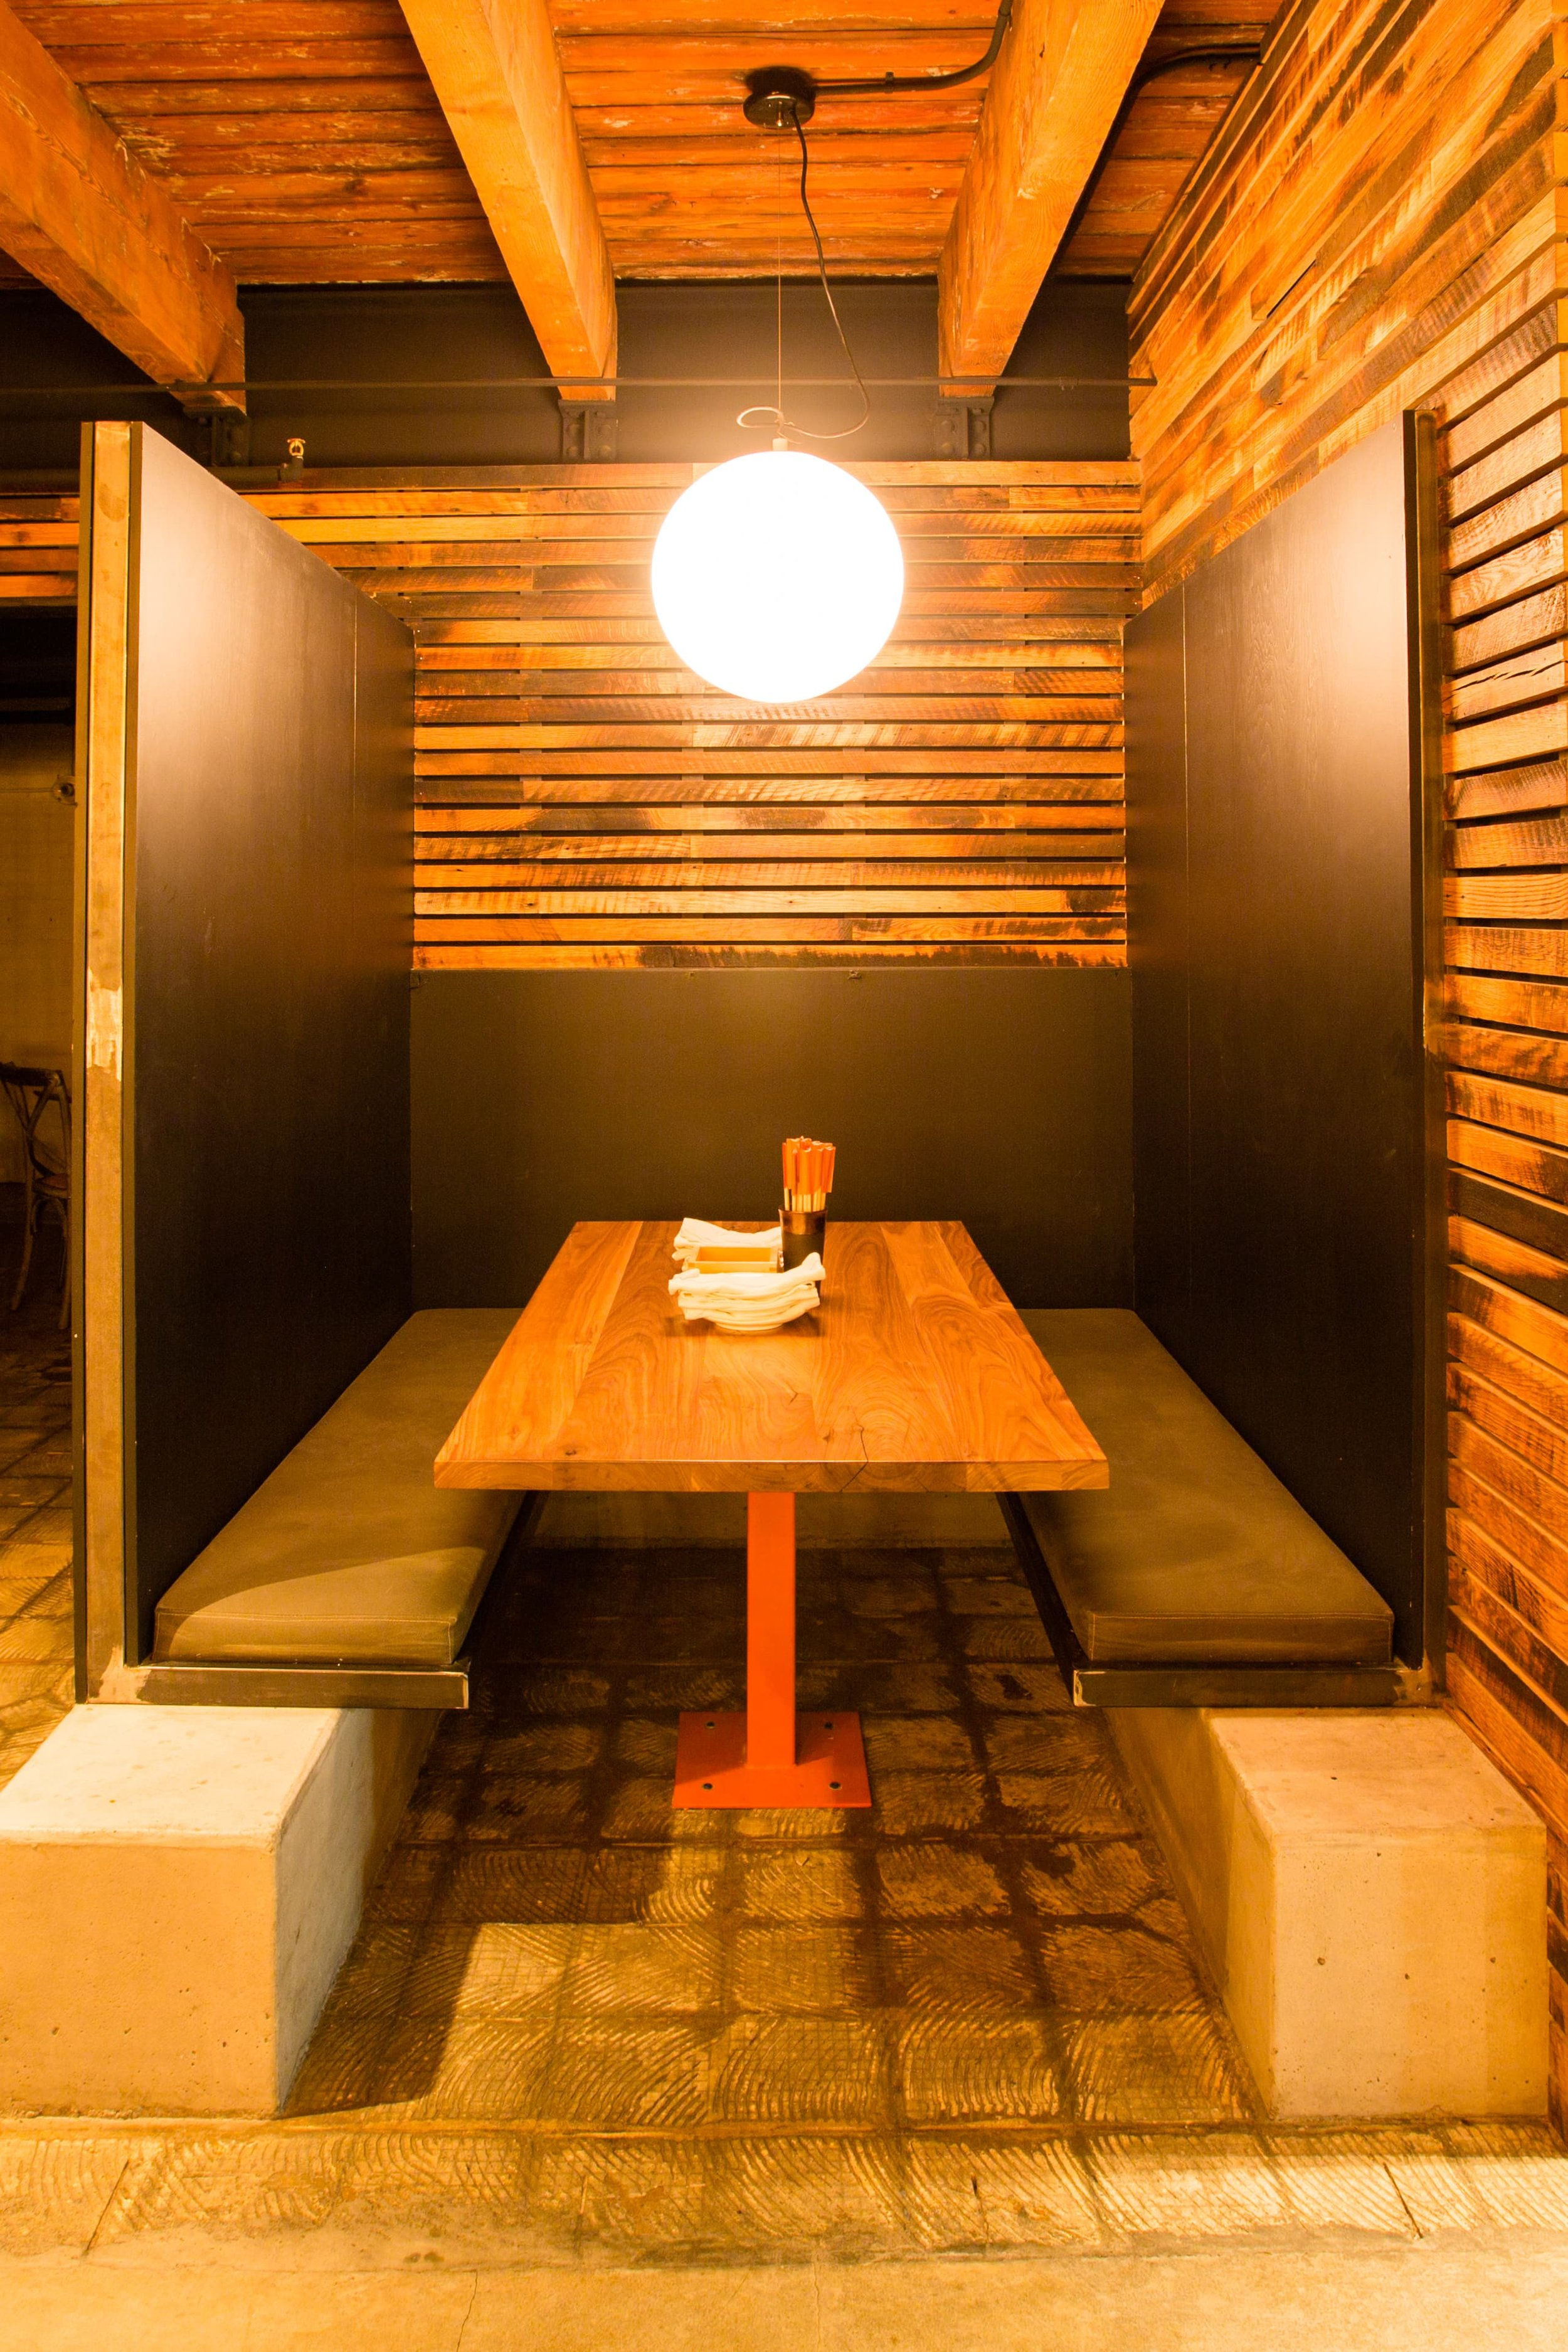 This is a local Izakaya and Ramen House. This was a great project because we were able to utilize waxed steel and concrete in a variety of ways. This is a beautiful space that leverages the individual nature of the materials to great affect. The booths used concrete bases and welded steel seating with extended backs. #commercial